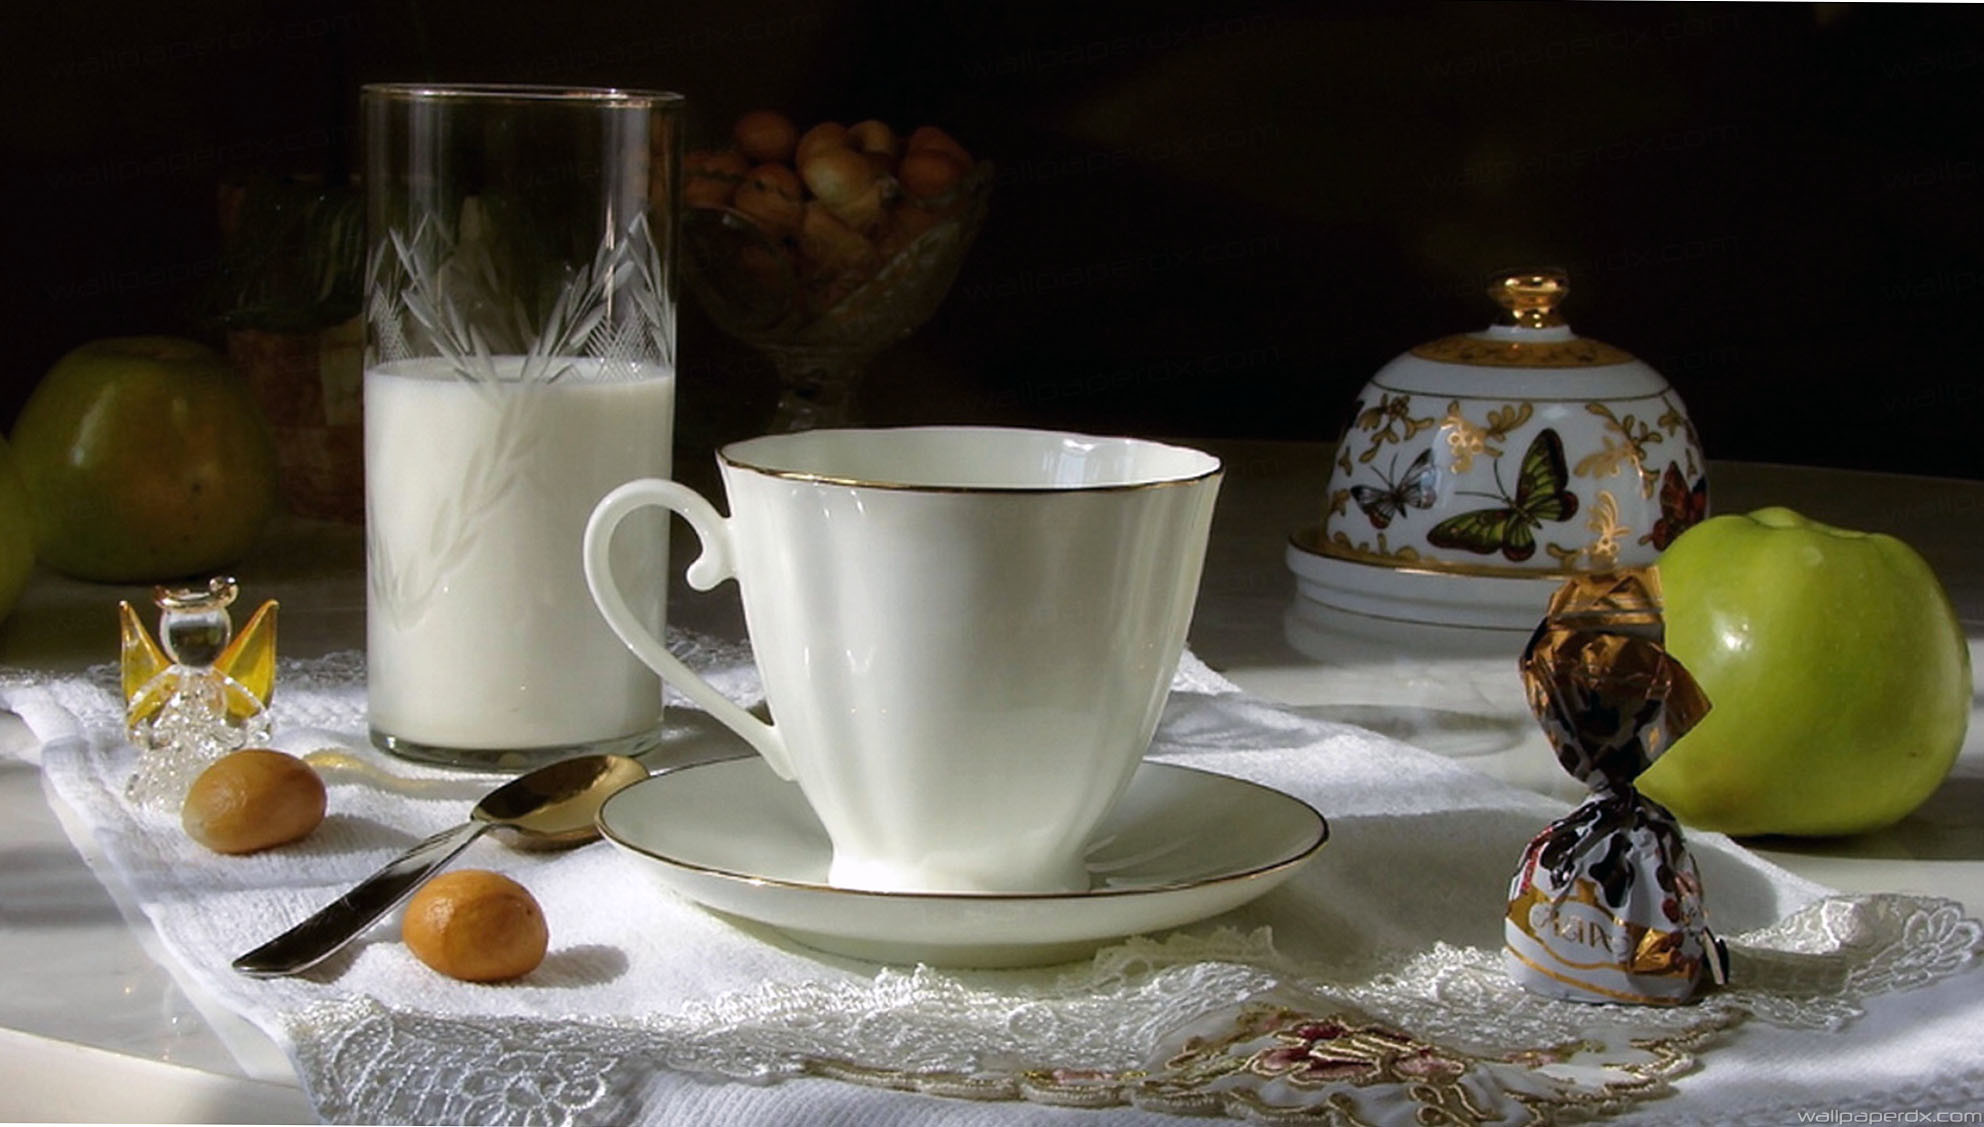 1984x1127 cup teapot candy tea drinking hd wallpaper - wallpaperdx .